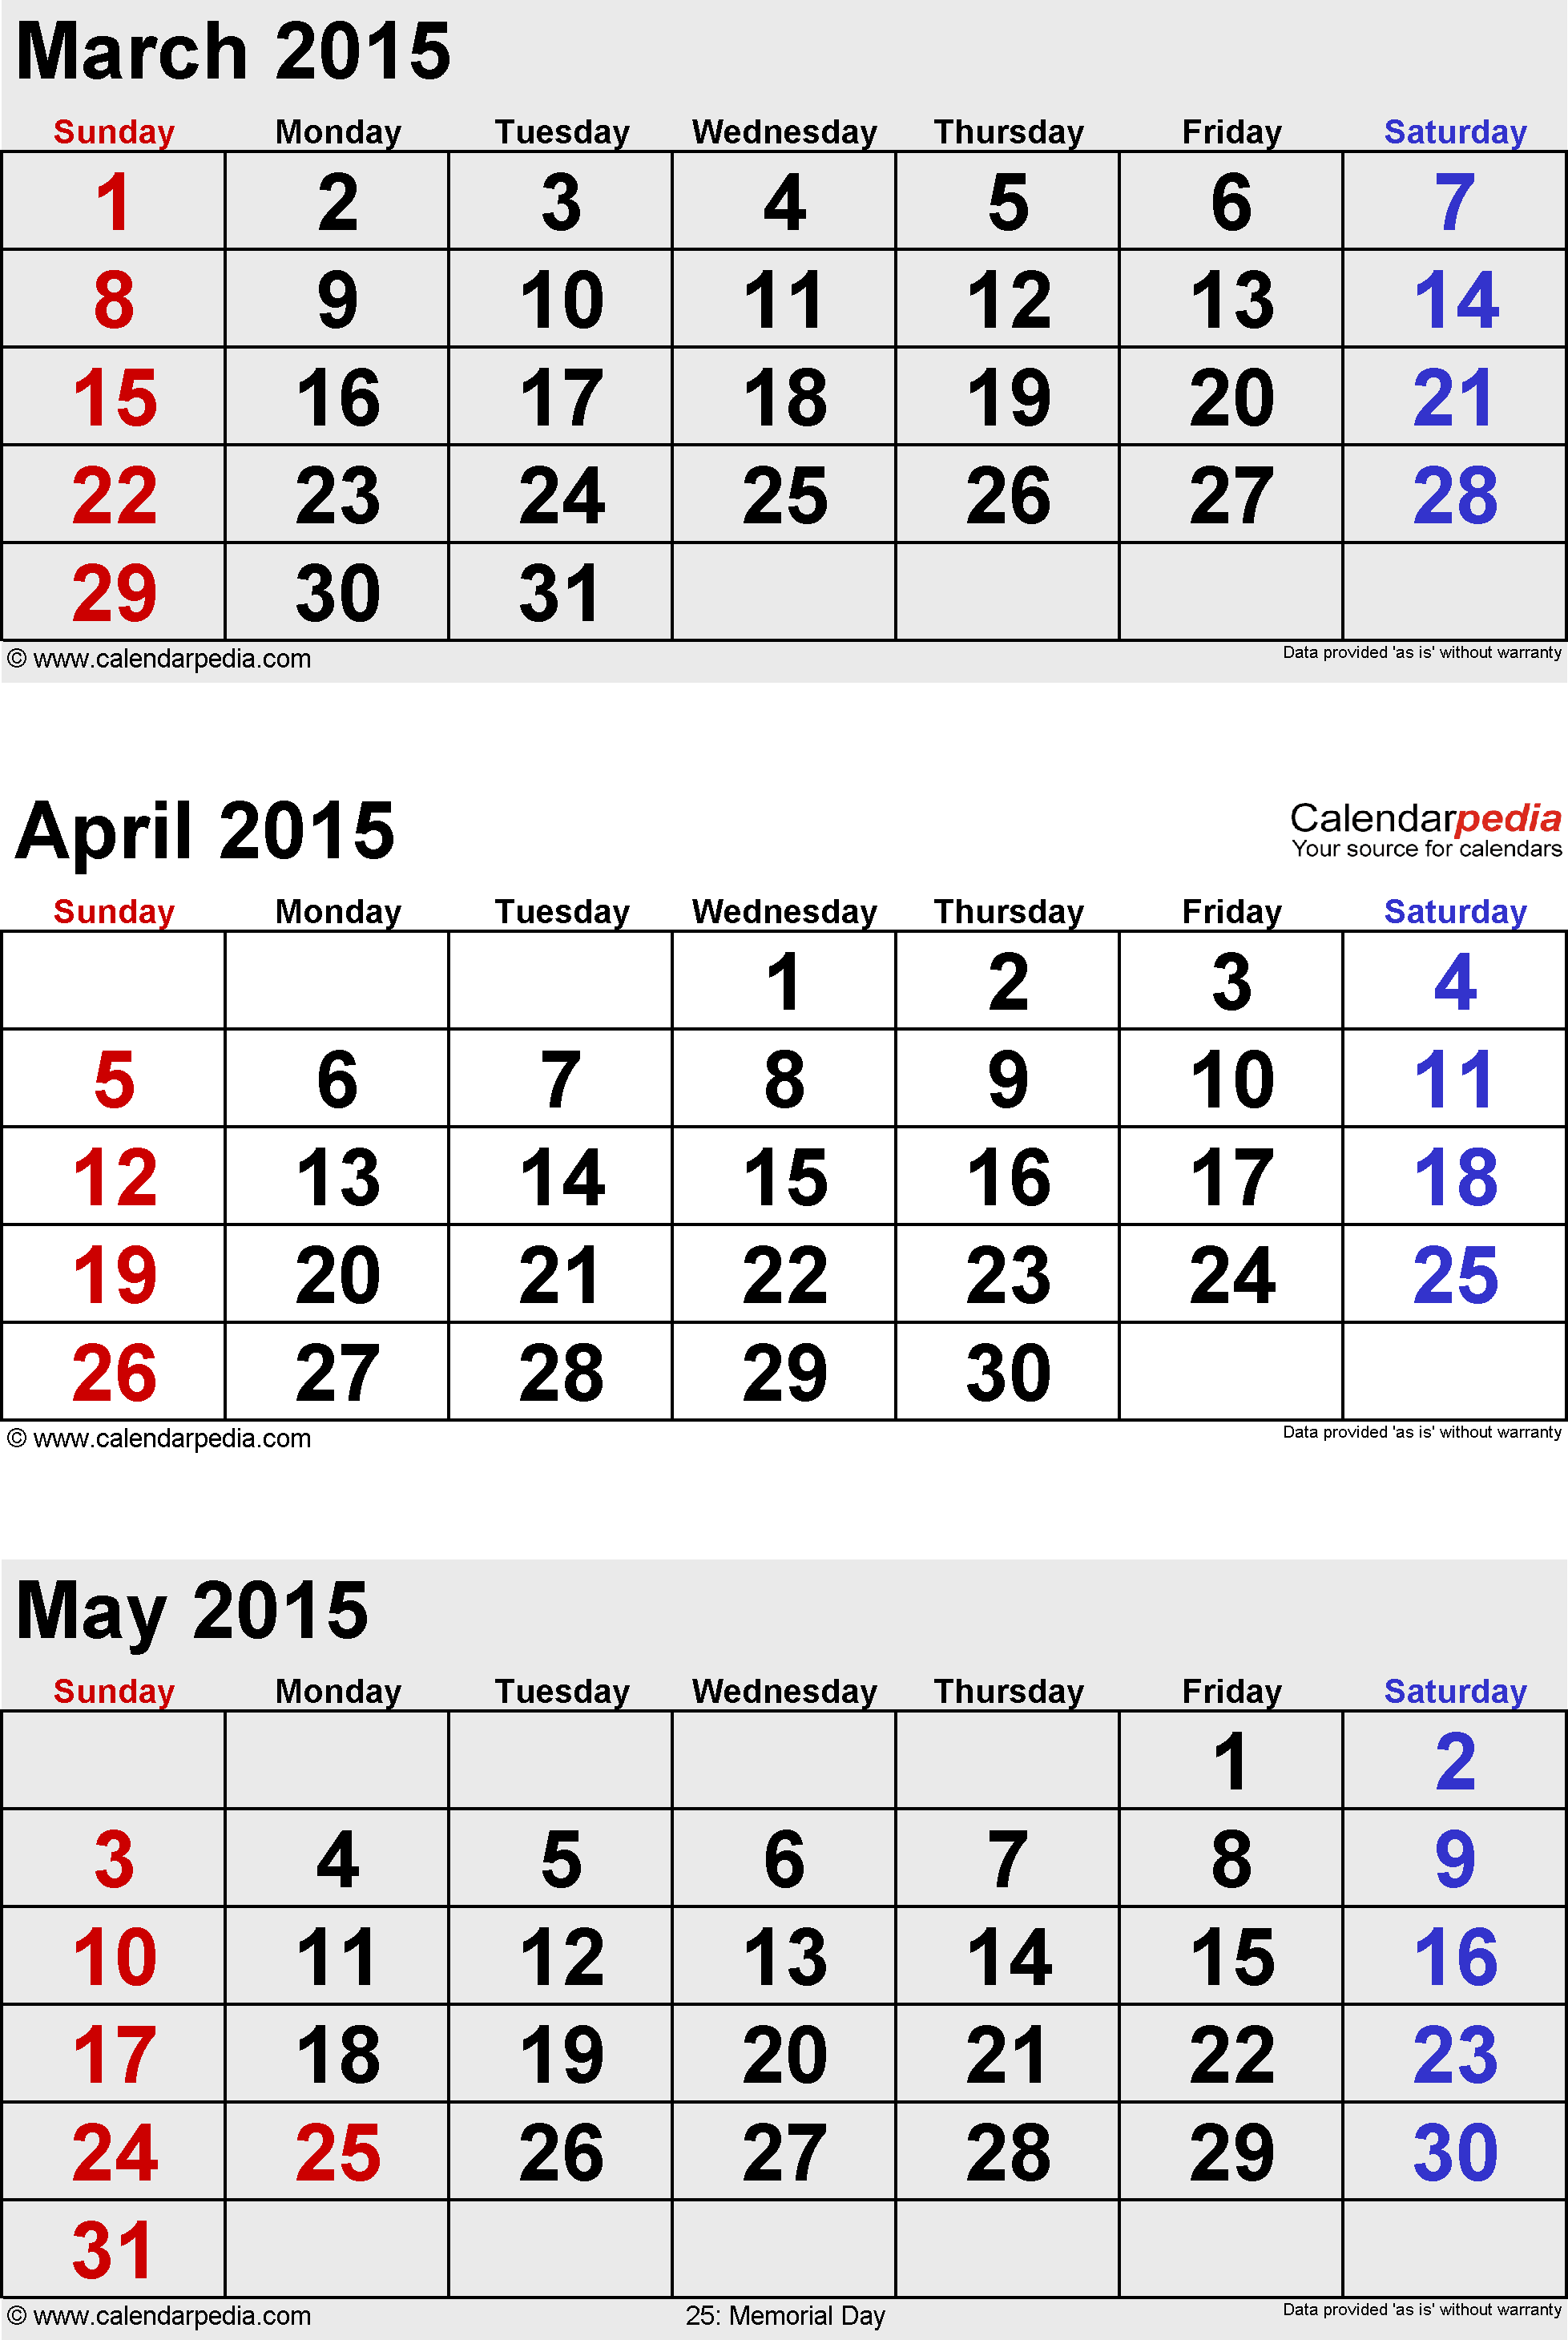 3 months calendar April/May/June 2015 in portrait format